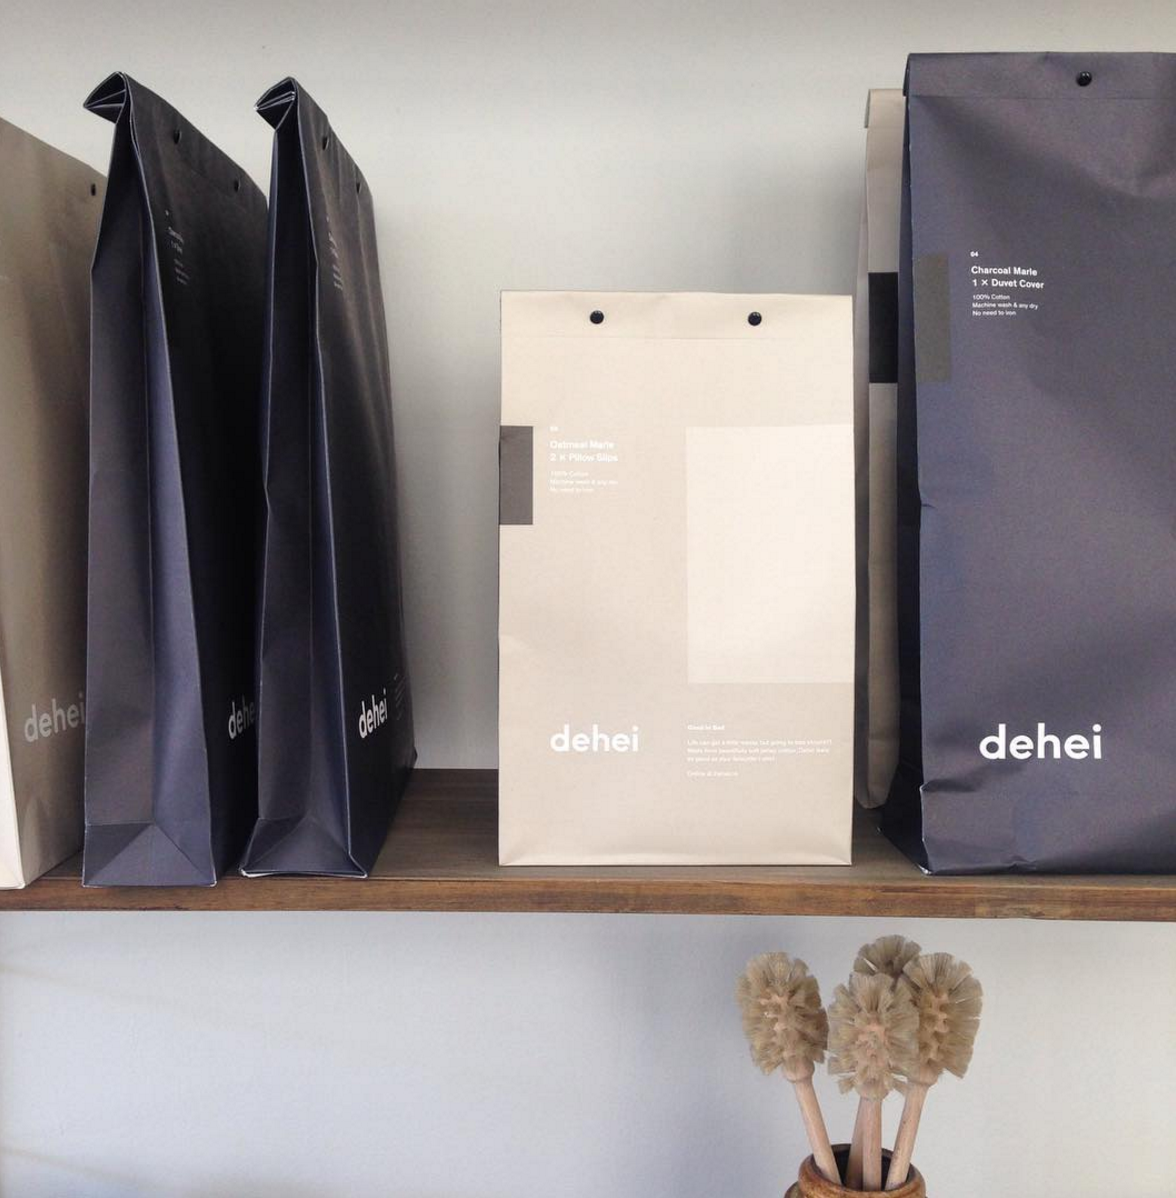 dehei-bedding-packaging-remodelista